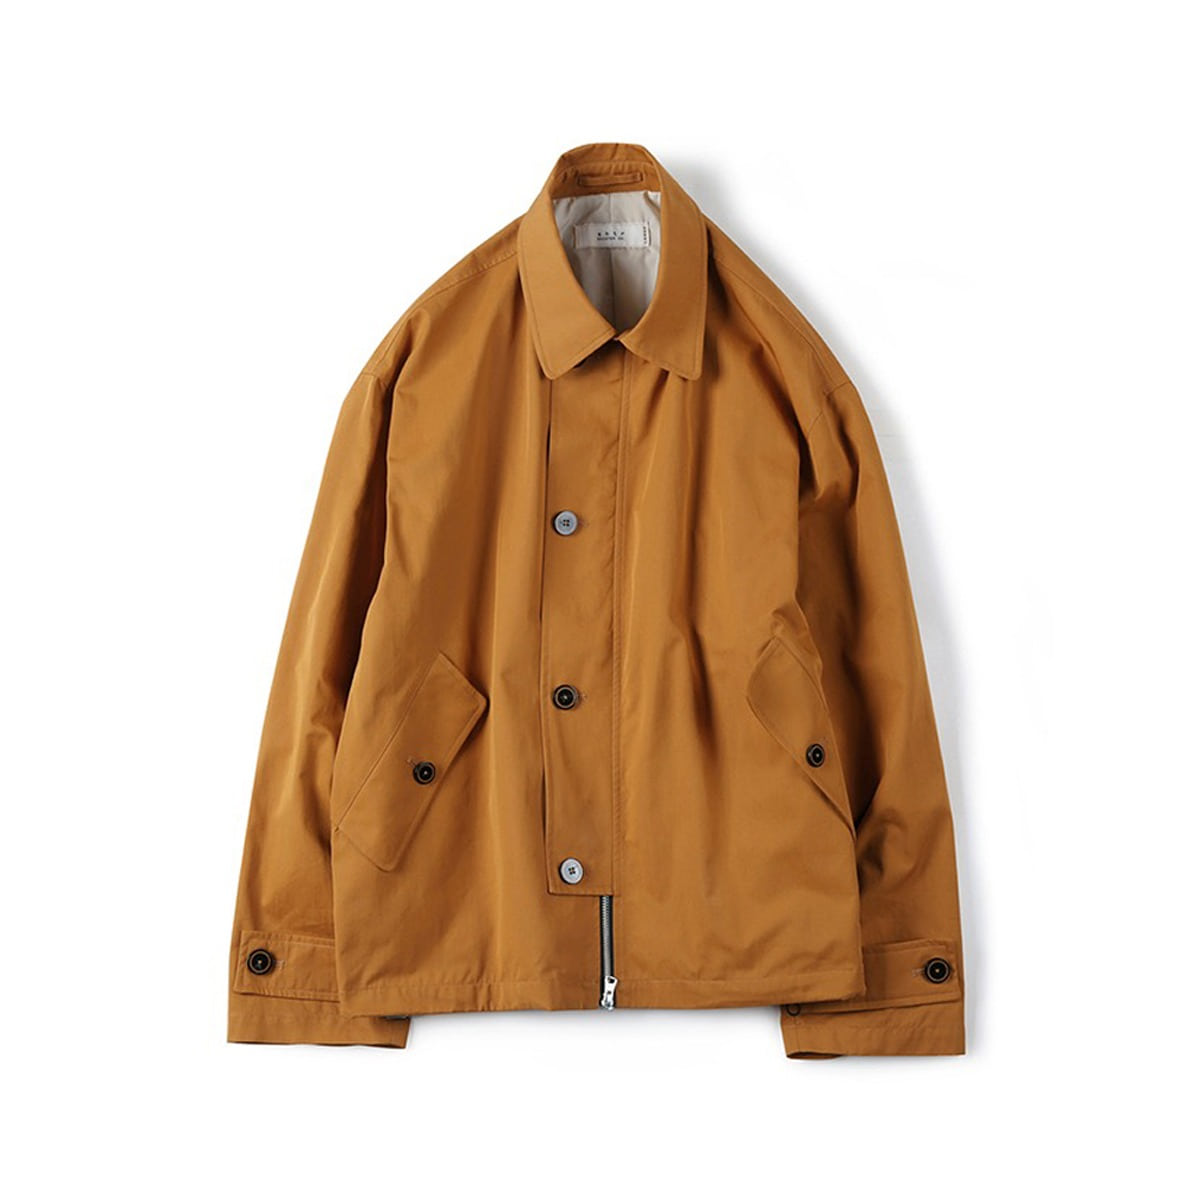 [SHIRTER] HIGH DENSITY TWILL GABARDINE JACKET 'MUSTARD'